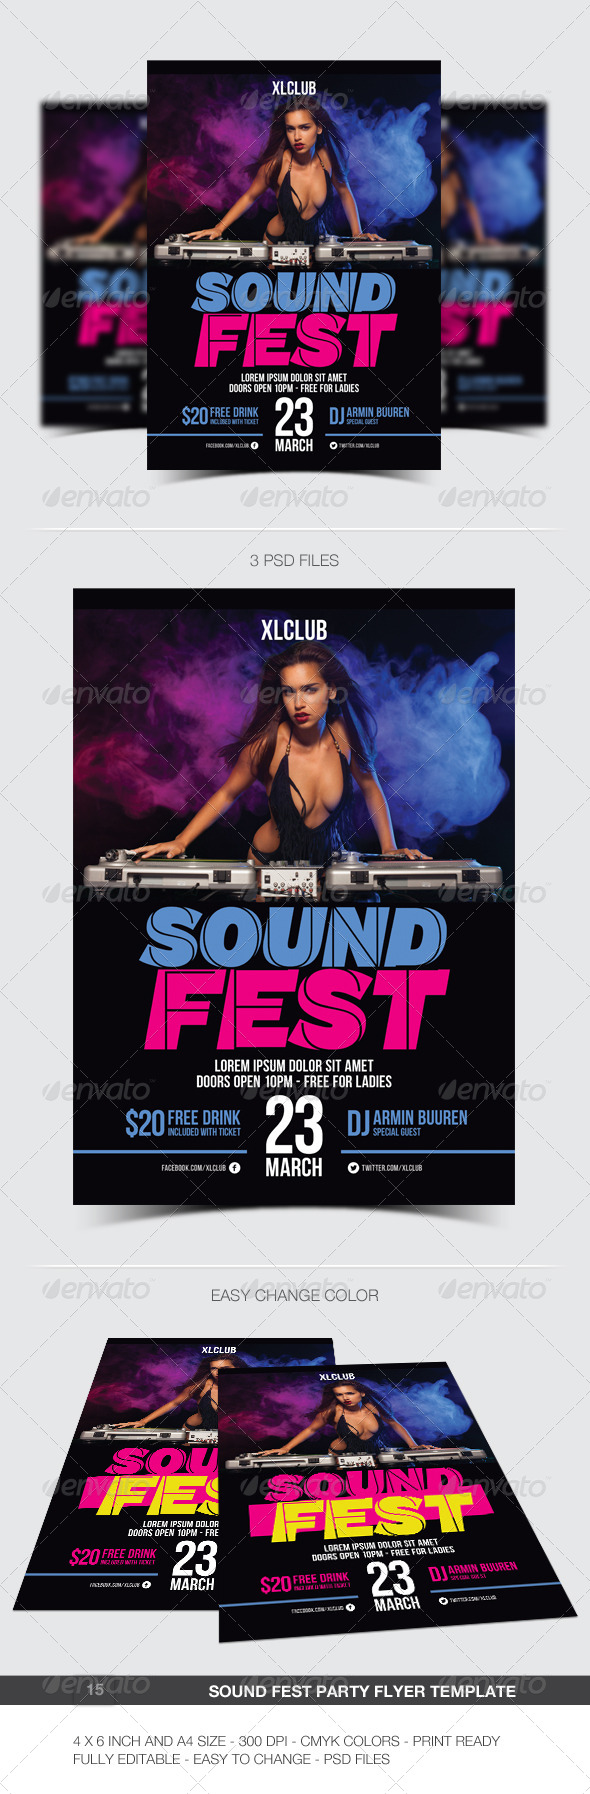 Sound Fest Party Flyer / Poster - 15 - Clubs & Parties Events